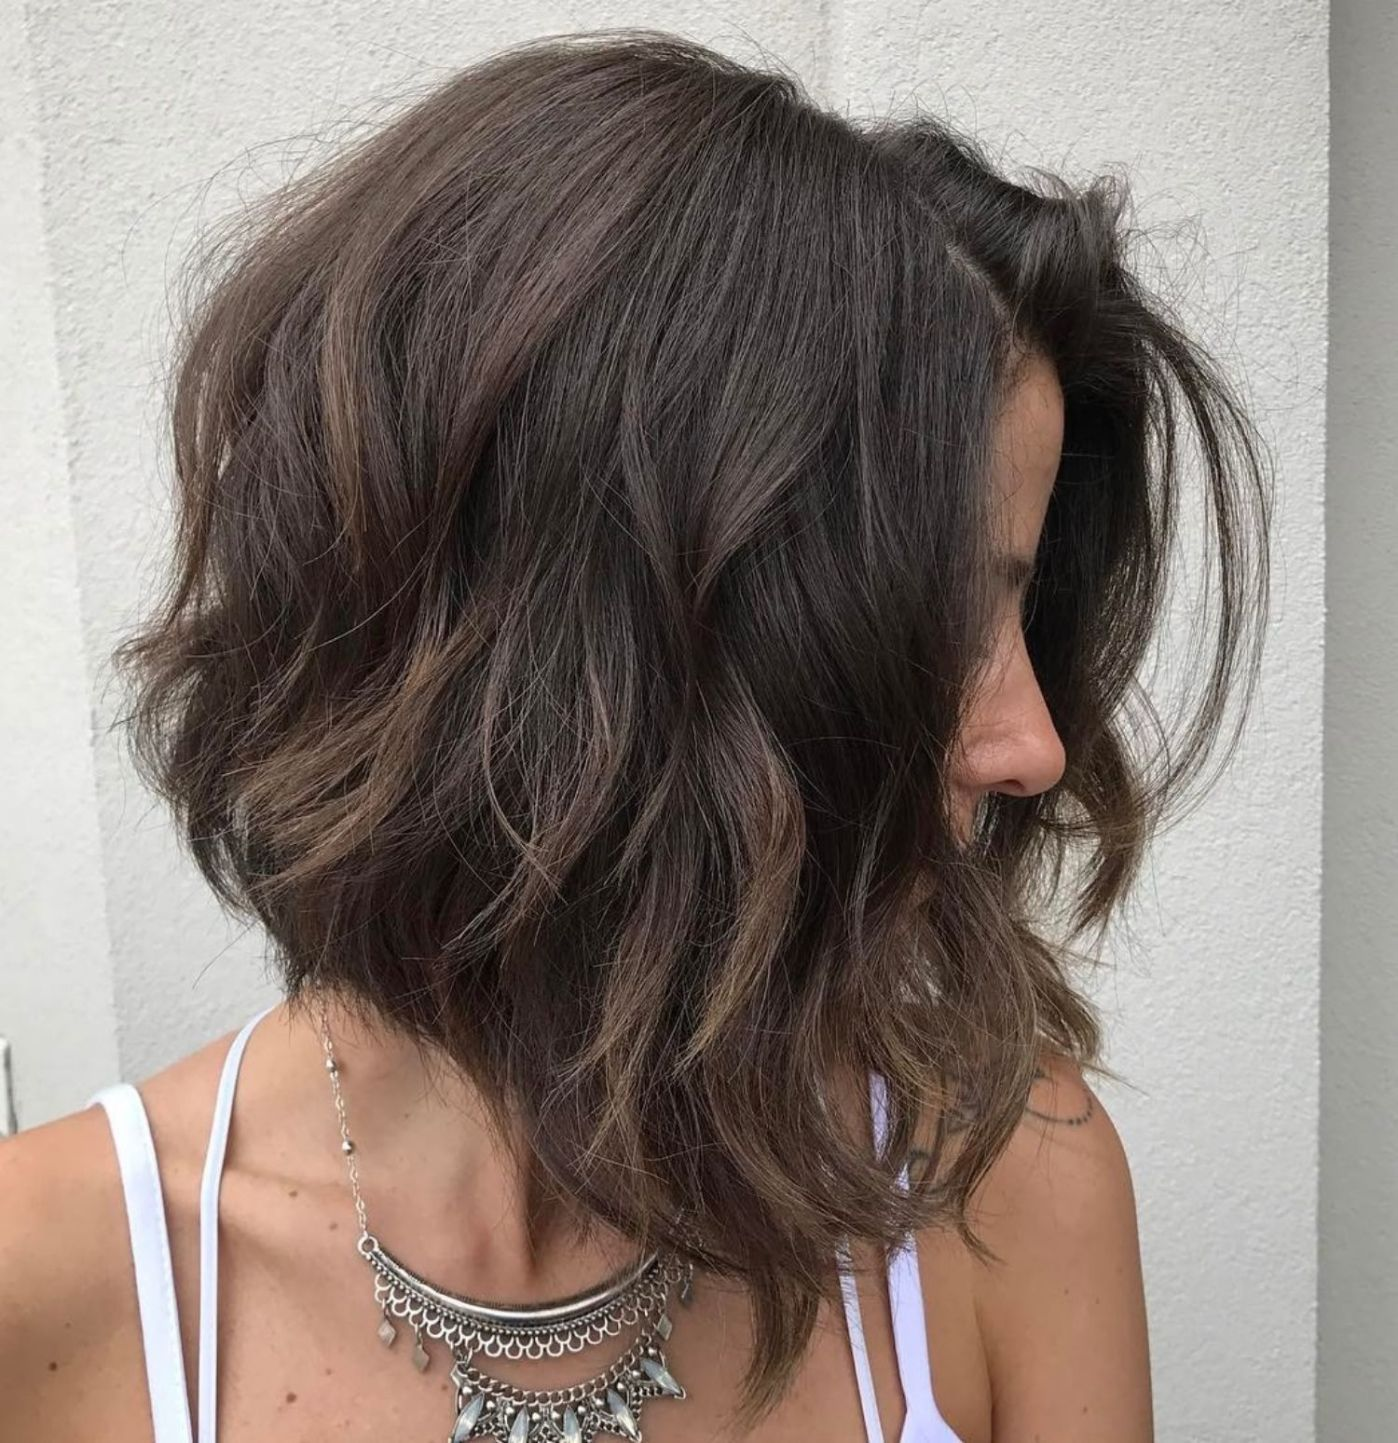 60 most magnetizing hairstyles for thick wavy hair | hair in